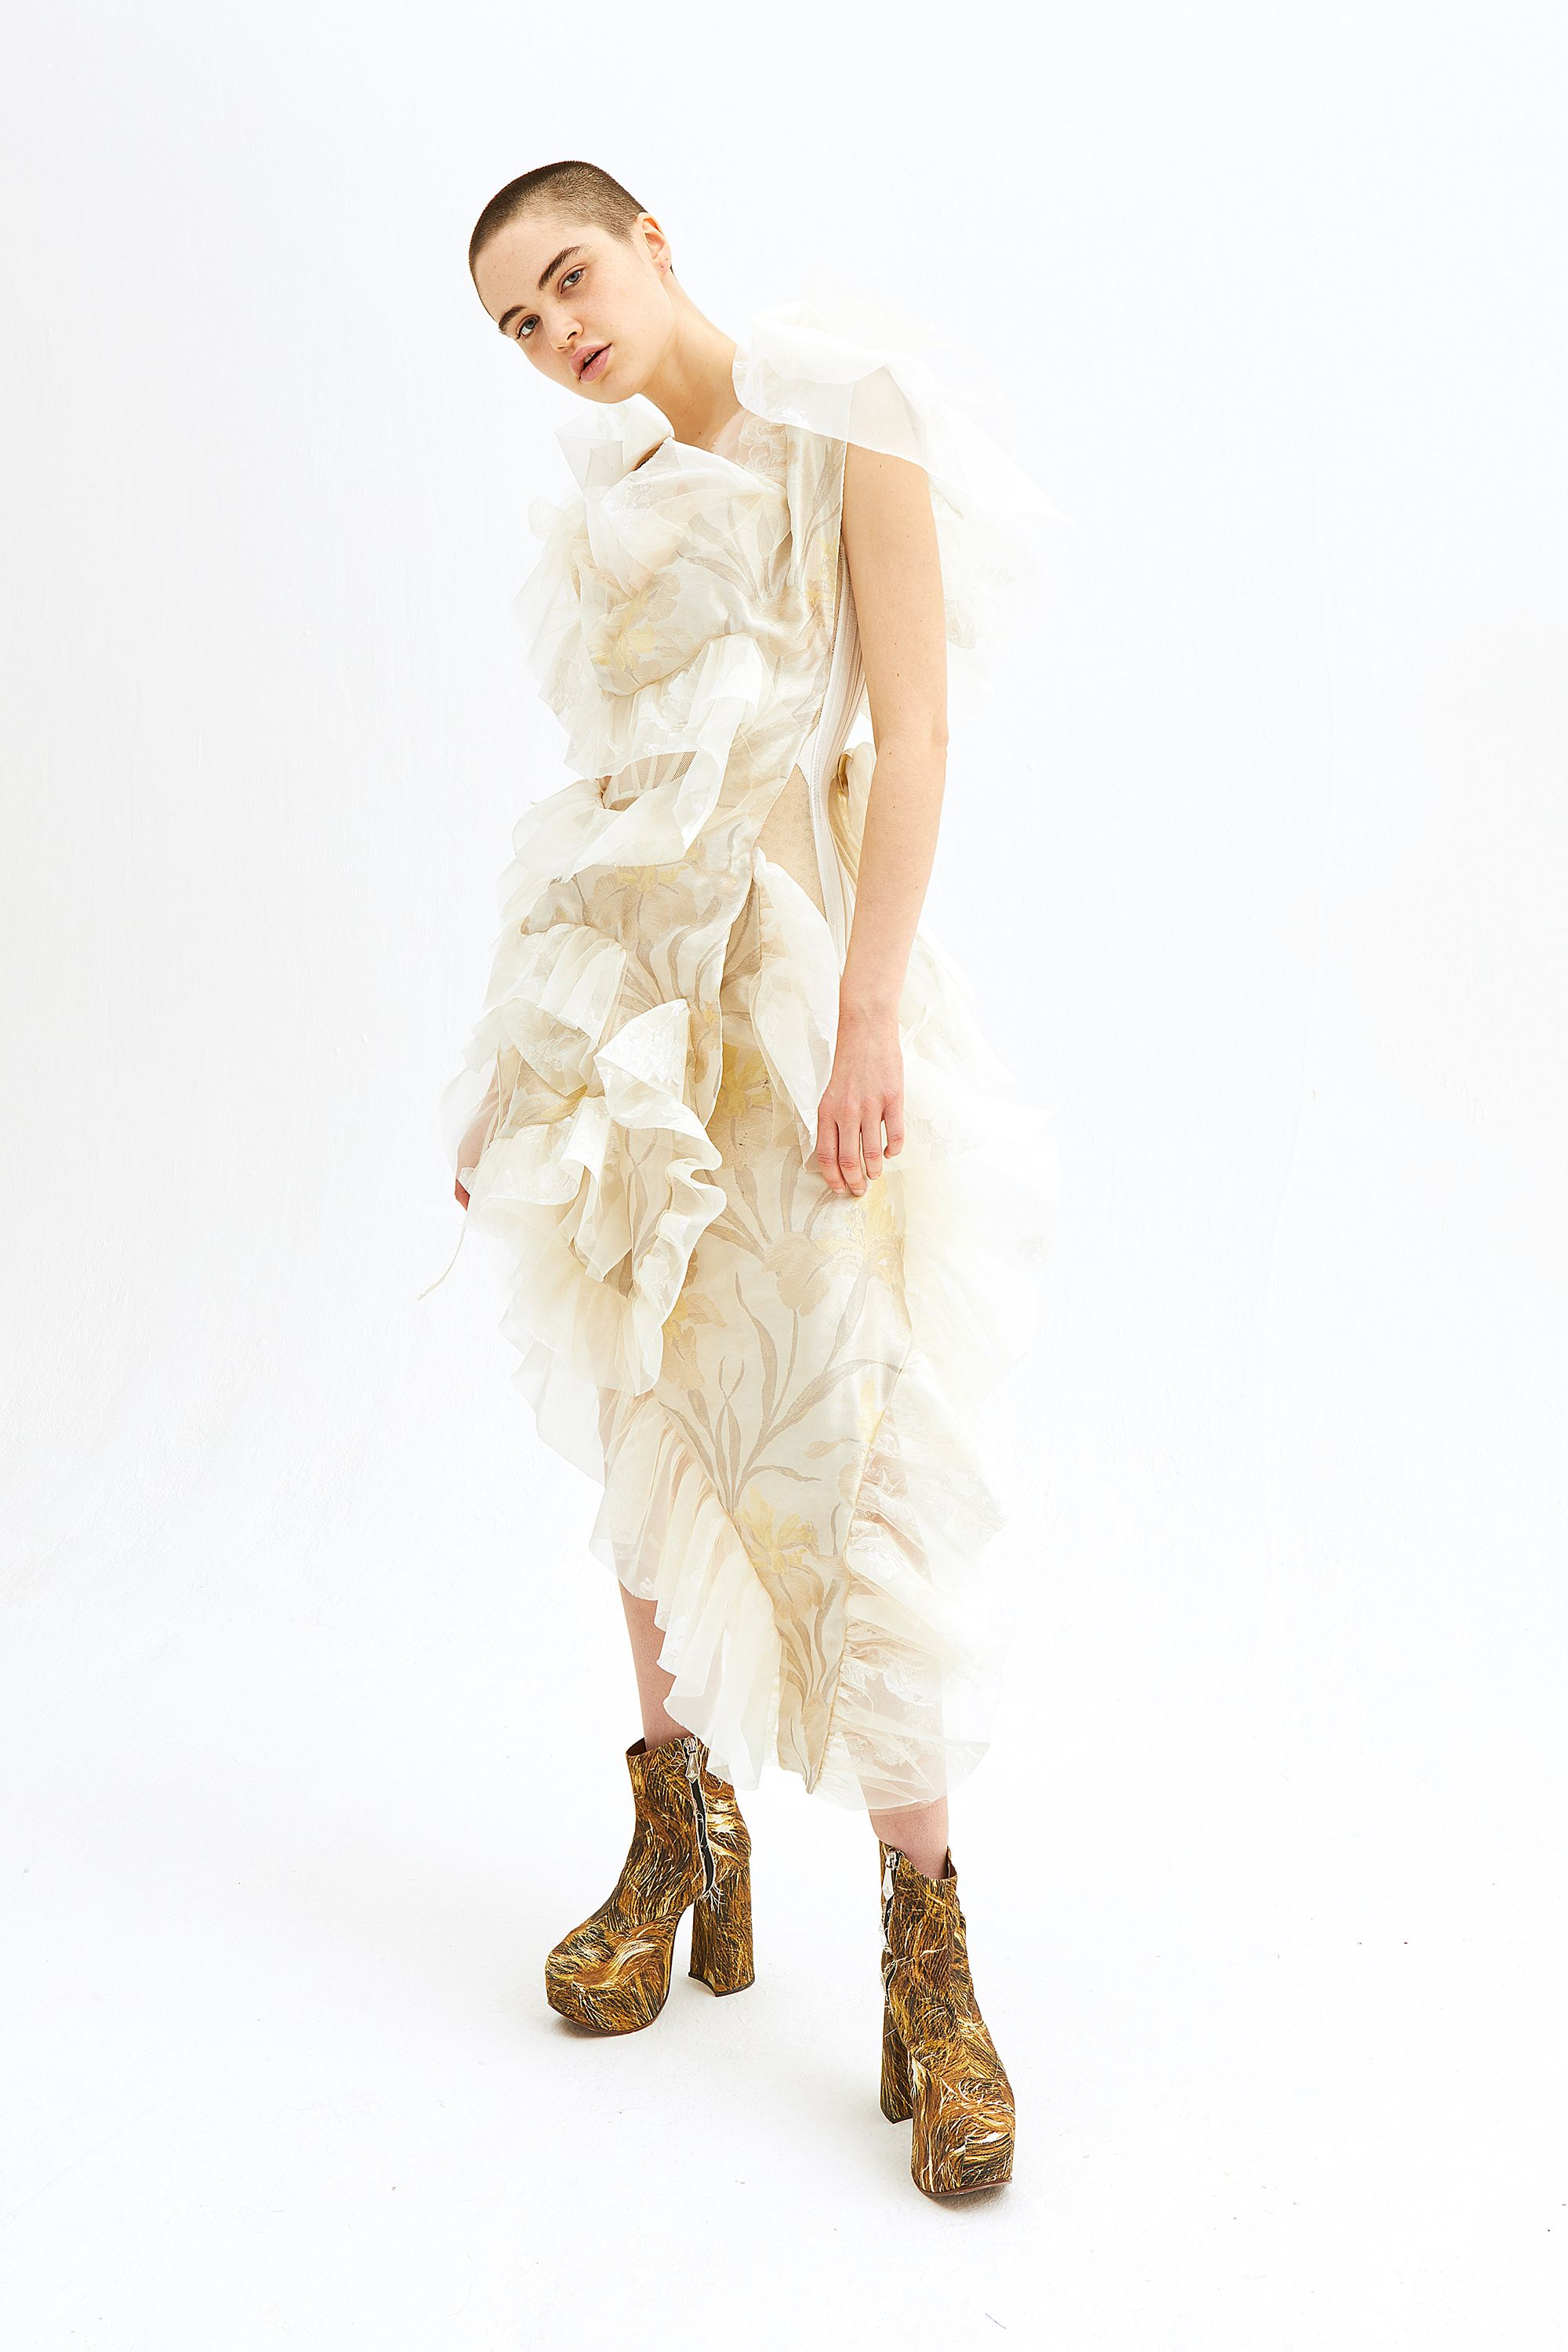 The Making Of Erin Wasson S Unconventional Upcycled Vivienne Westwood Wedding Dress